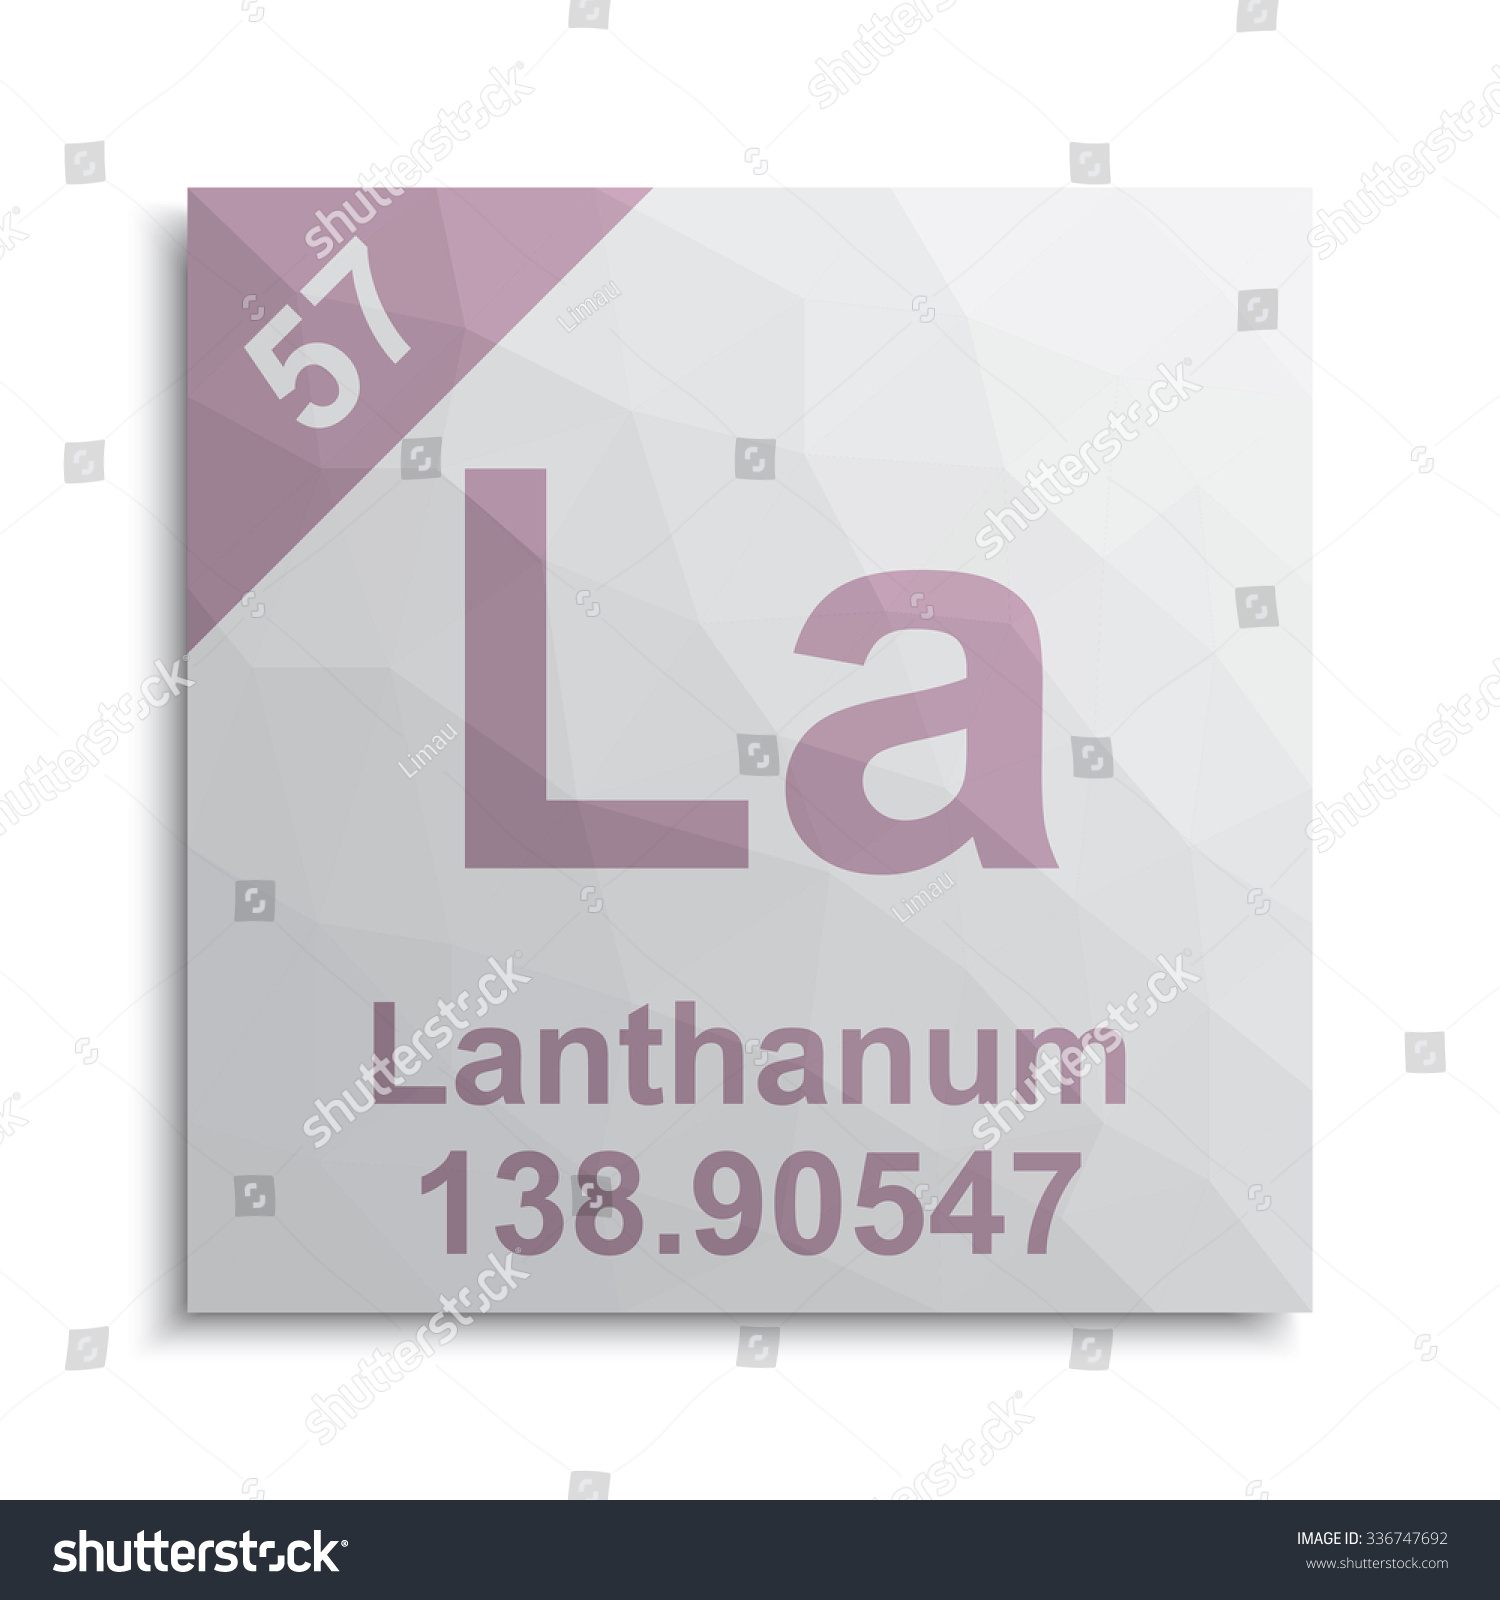 Lanthanum periodic table image collections periodic table images lanthanum element periodic table stock vector 336747692 shutterstock lanthanum element periodic table gamestrikefo image collections gamestrikefo Image collections